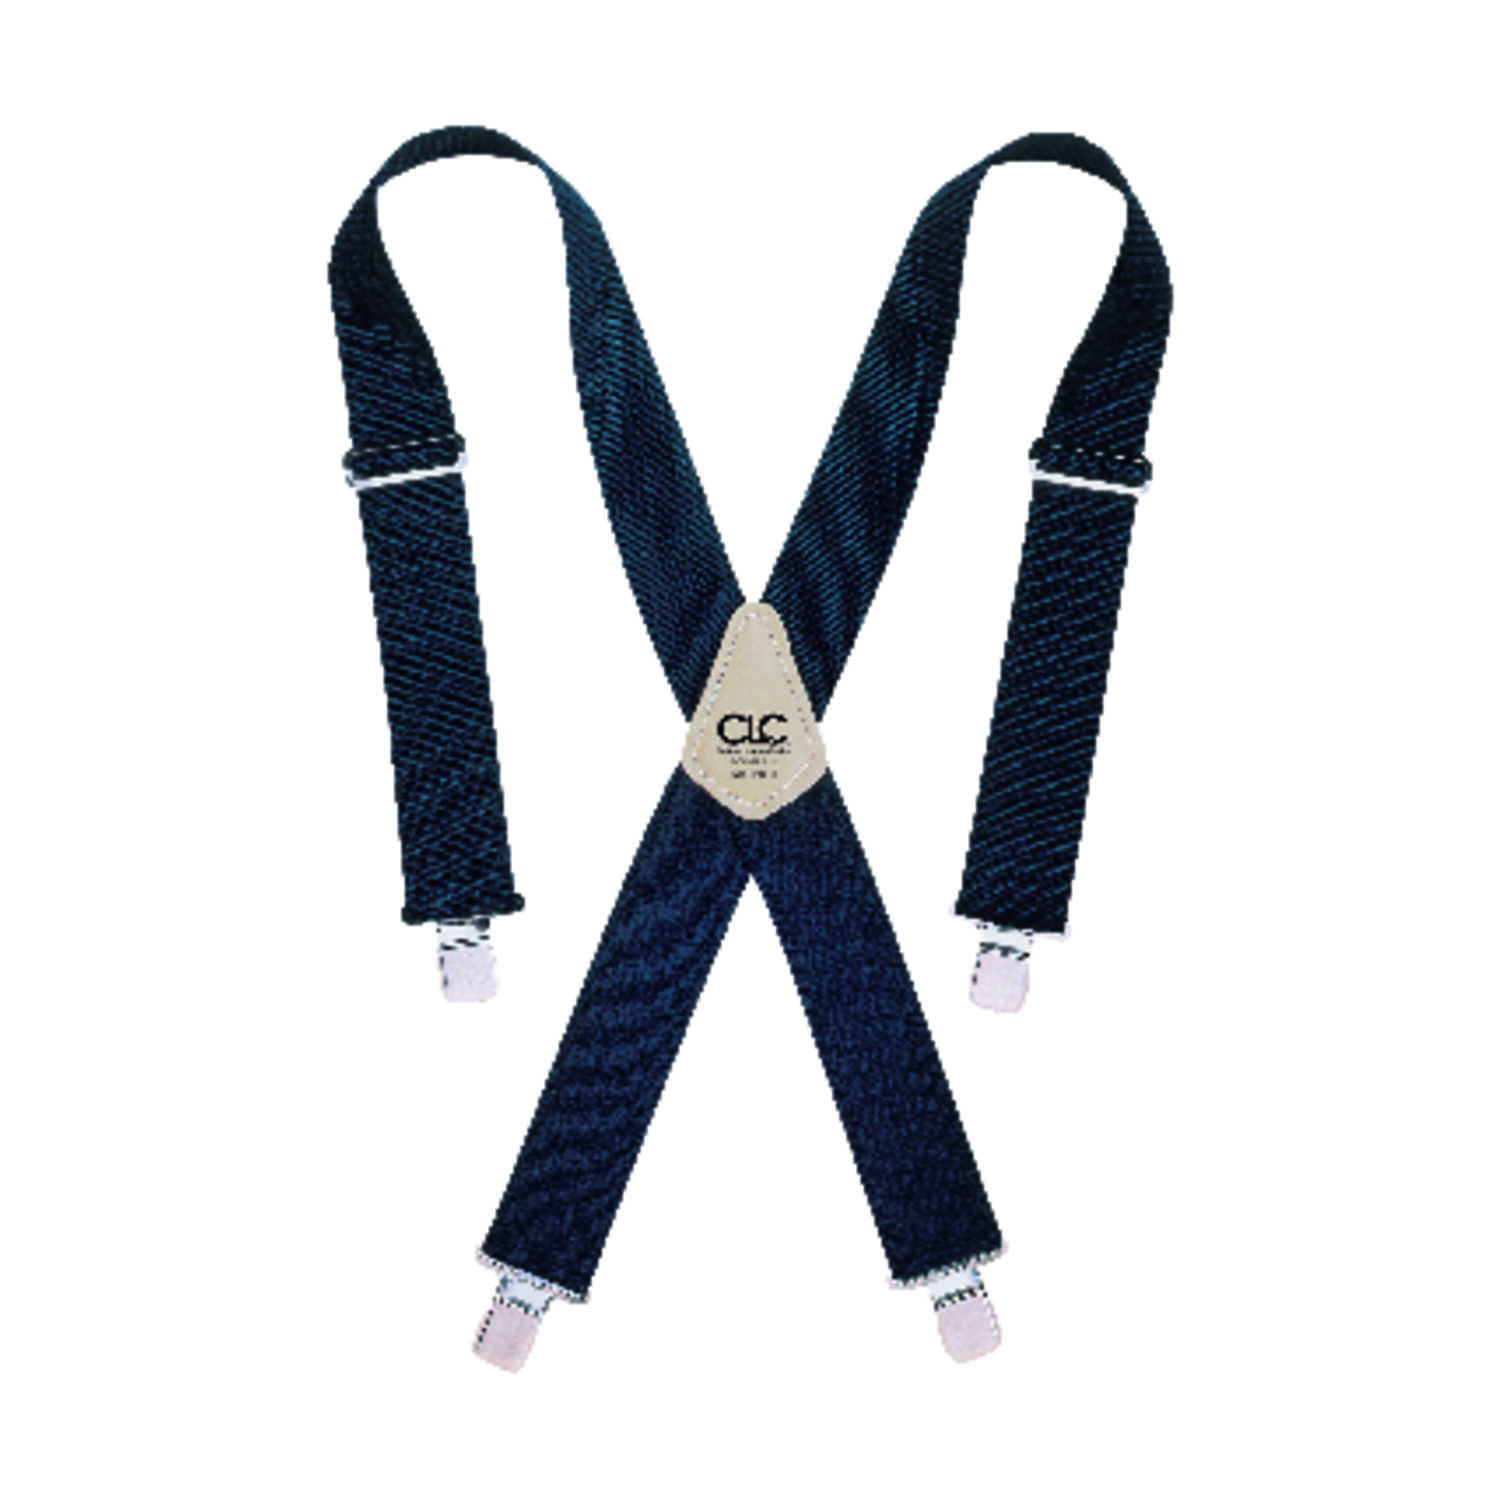 CLC  4 in. L x 2 in. W Nylon  Adjustable Suspenders  Blue  One Size Fits Most  1 pair